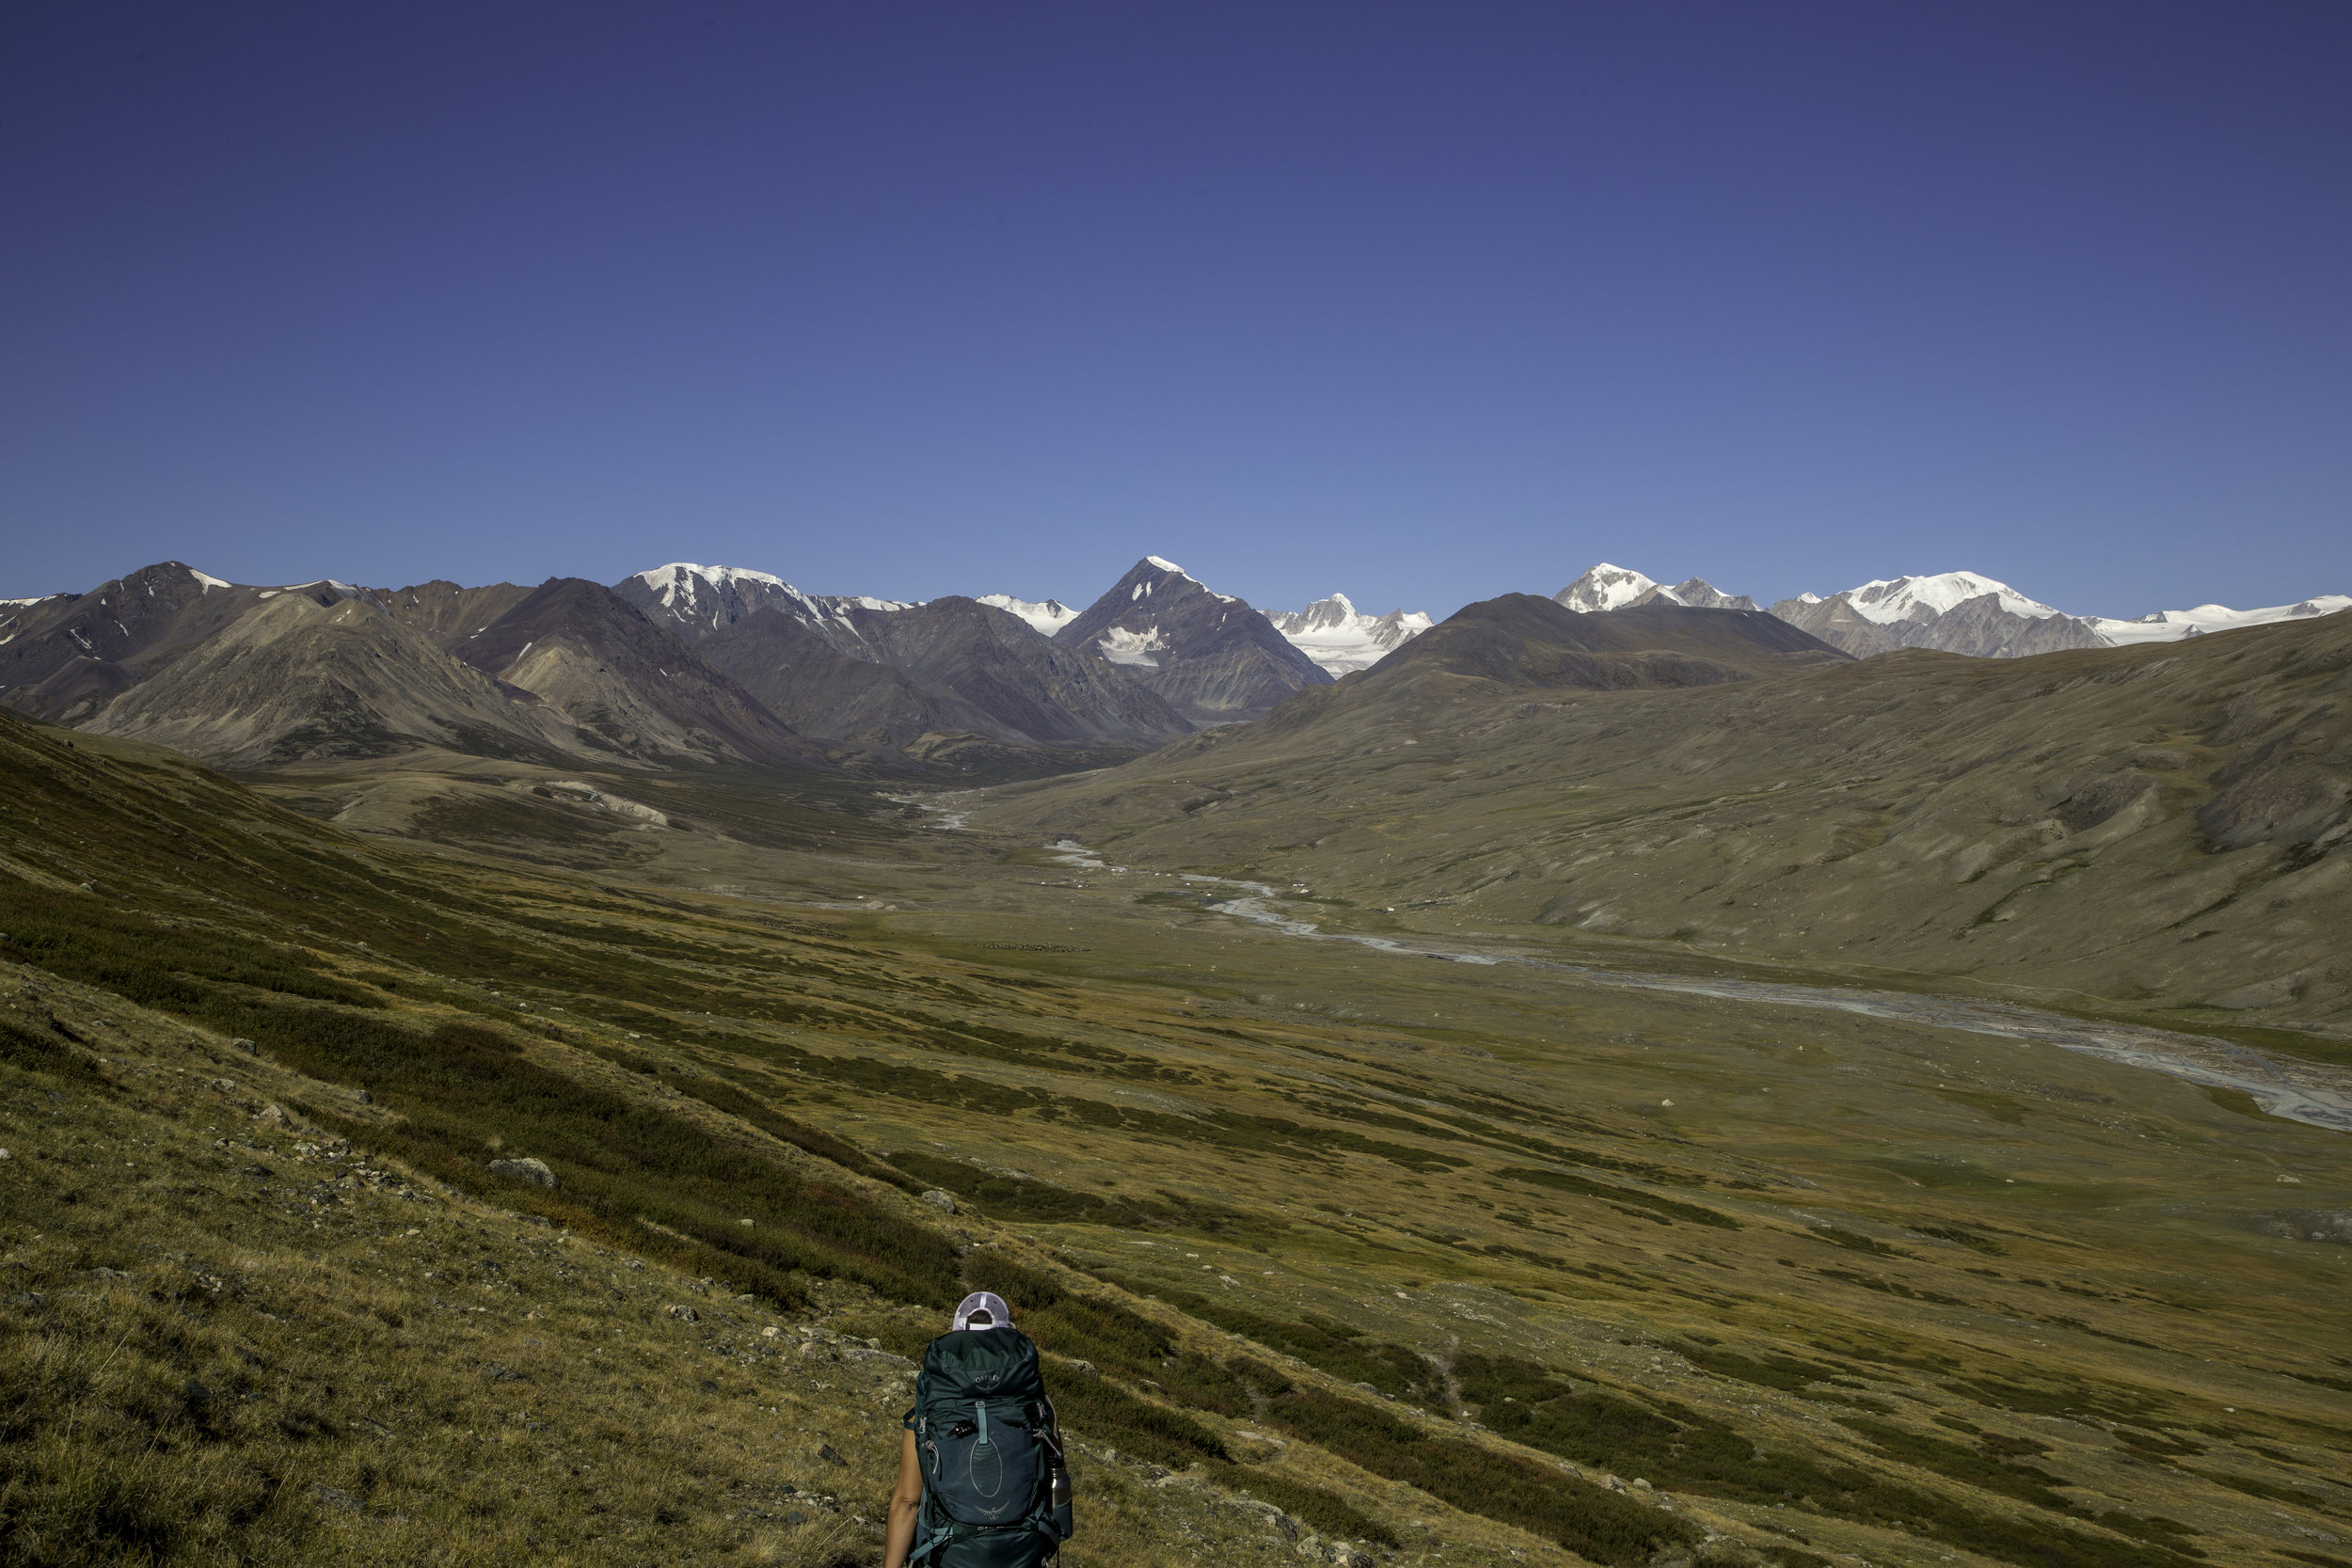 Descending towards the Tsagaan Gol River - 5 sacred peaks visible in the distance.